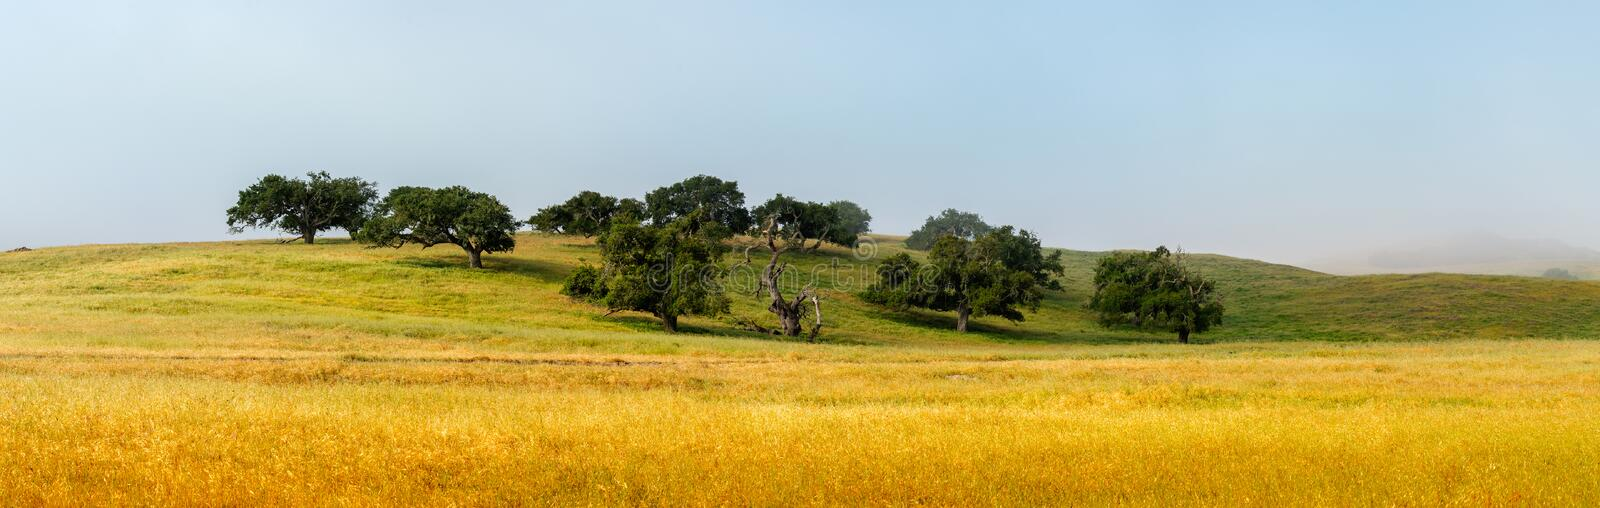 Panoramic View of Beautiful Old Oak Trees With Surrounding Pasture royalty free stock image